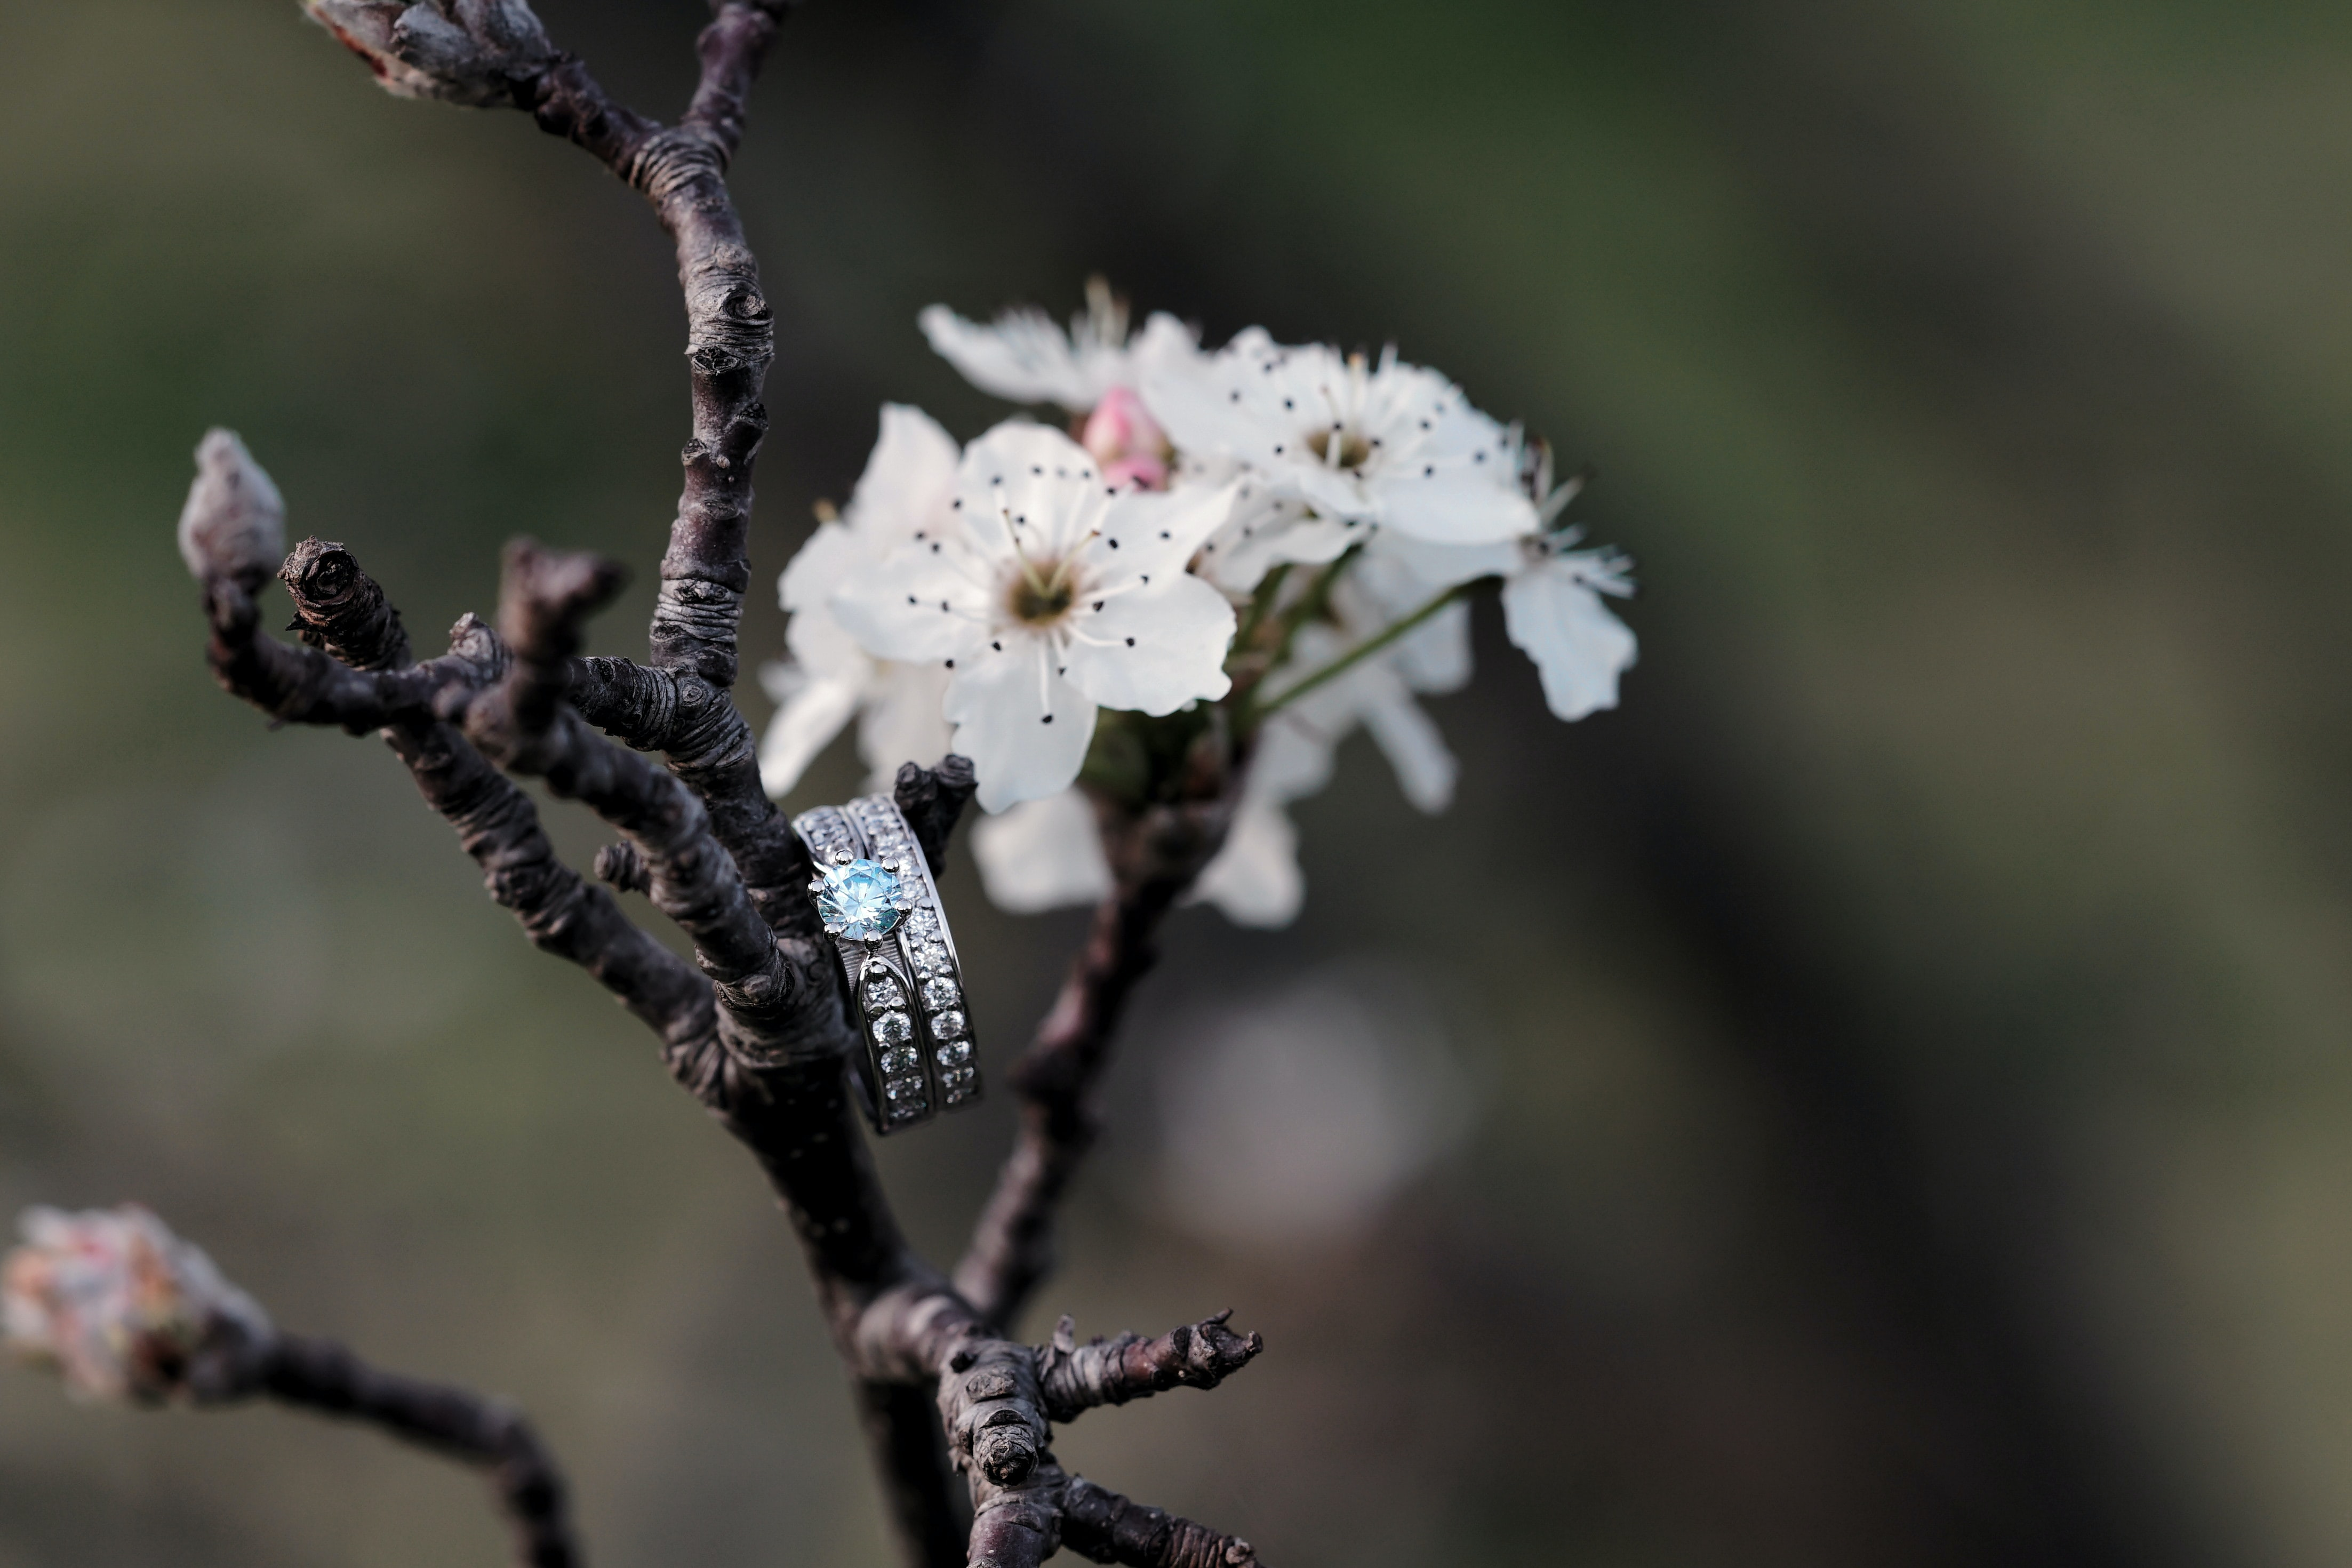 closeup photo of silver-colored ring on branch